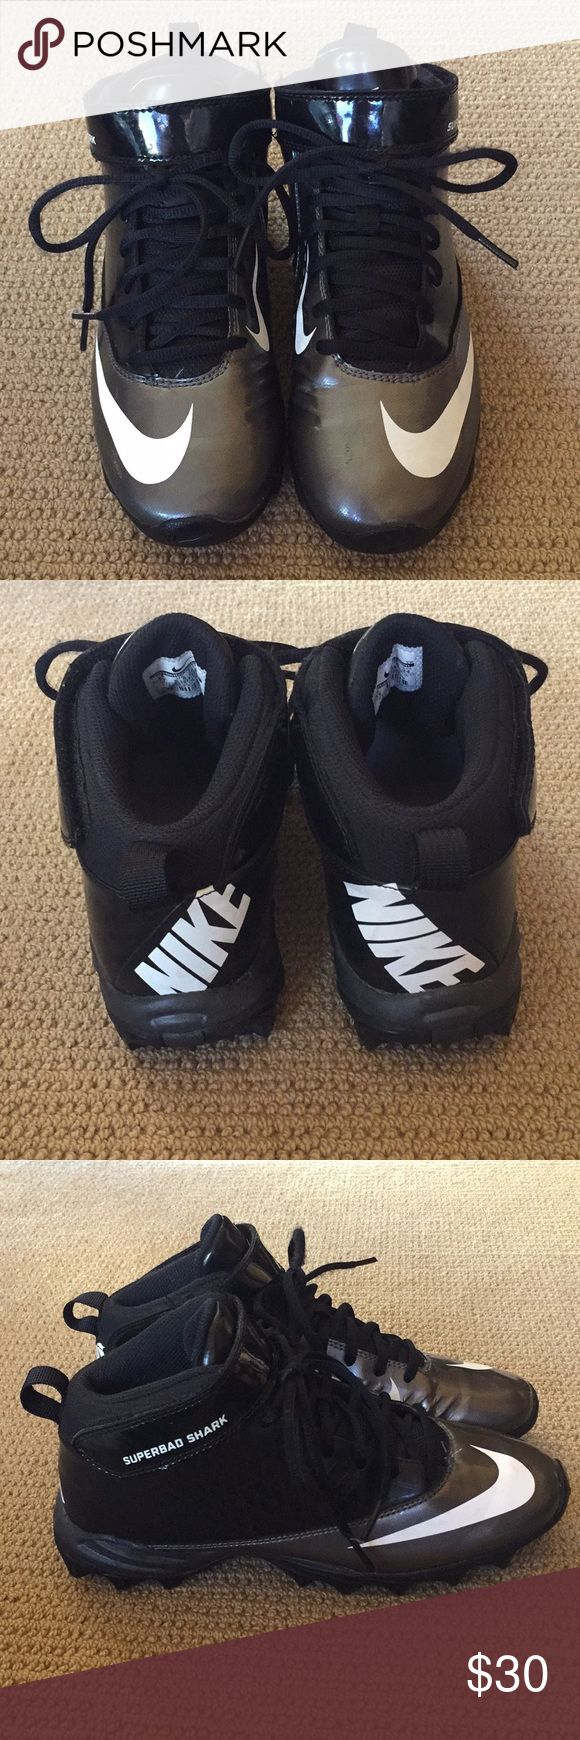 NEW Boys NIKE Superbad Shark football cleats New without tags - never been worn - NIKE Superbad Shark boys football cleats Nike Shoes